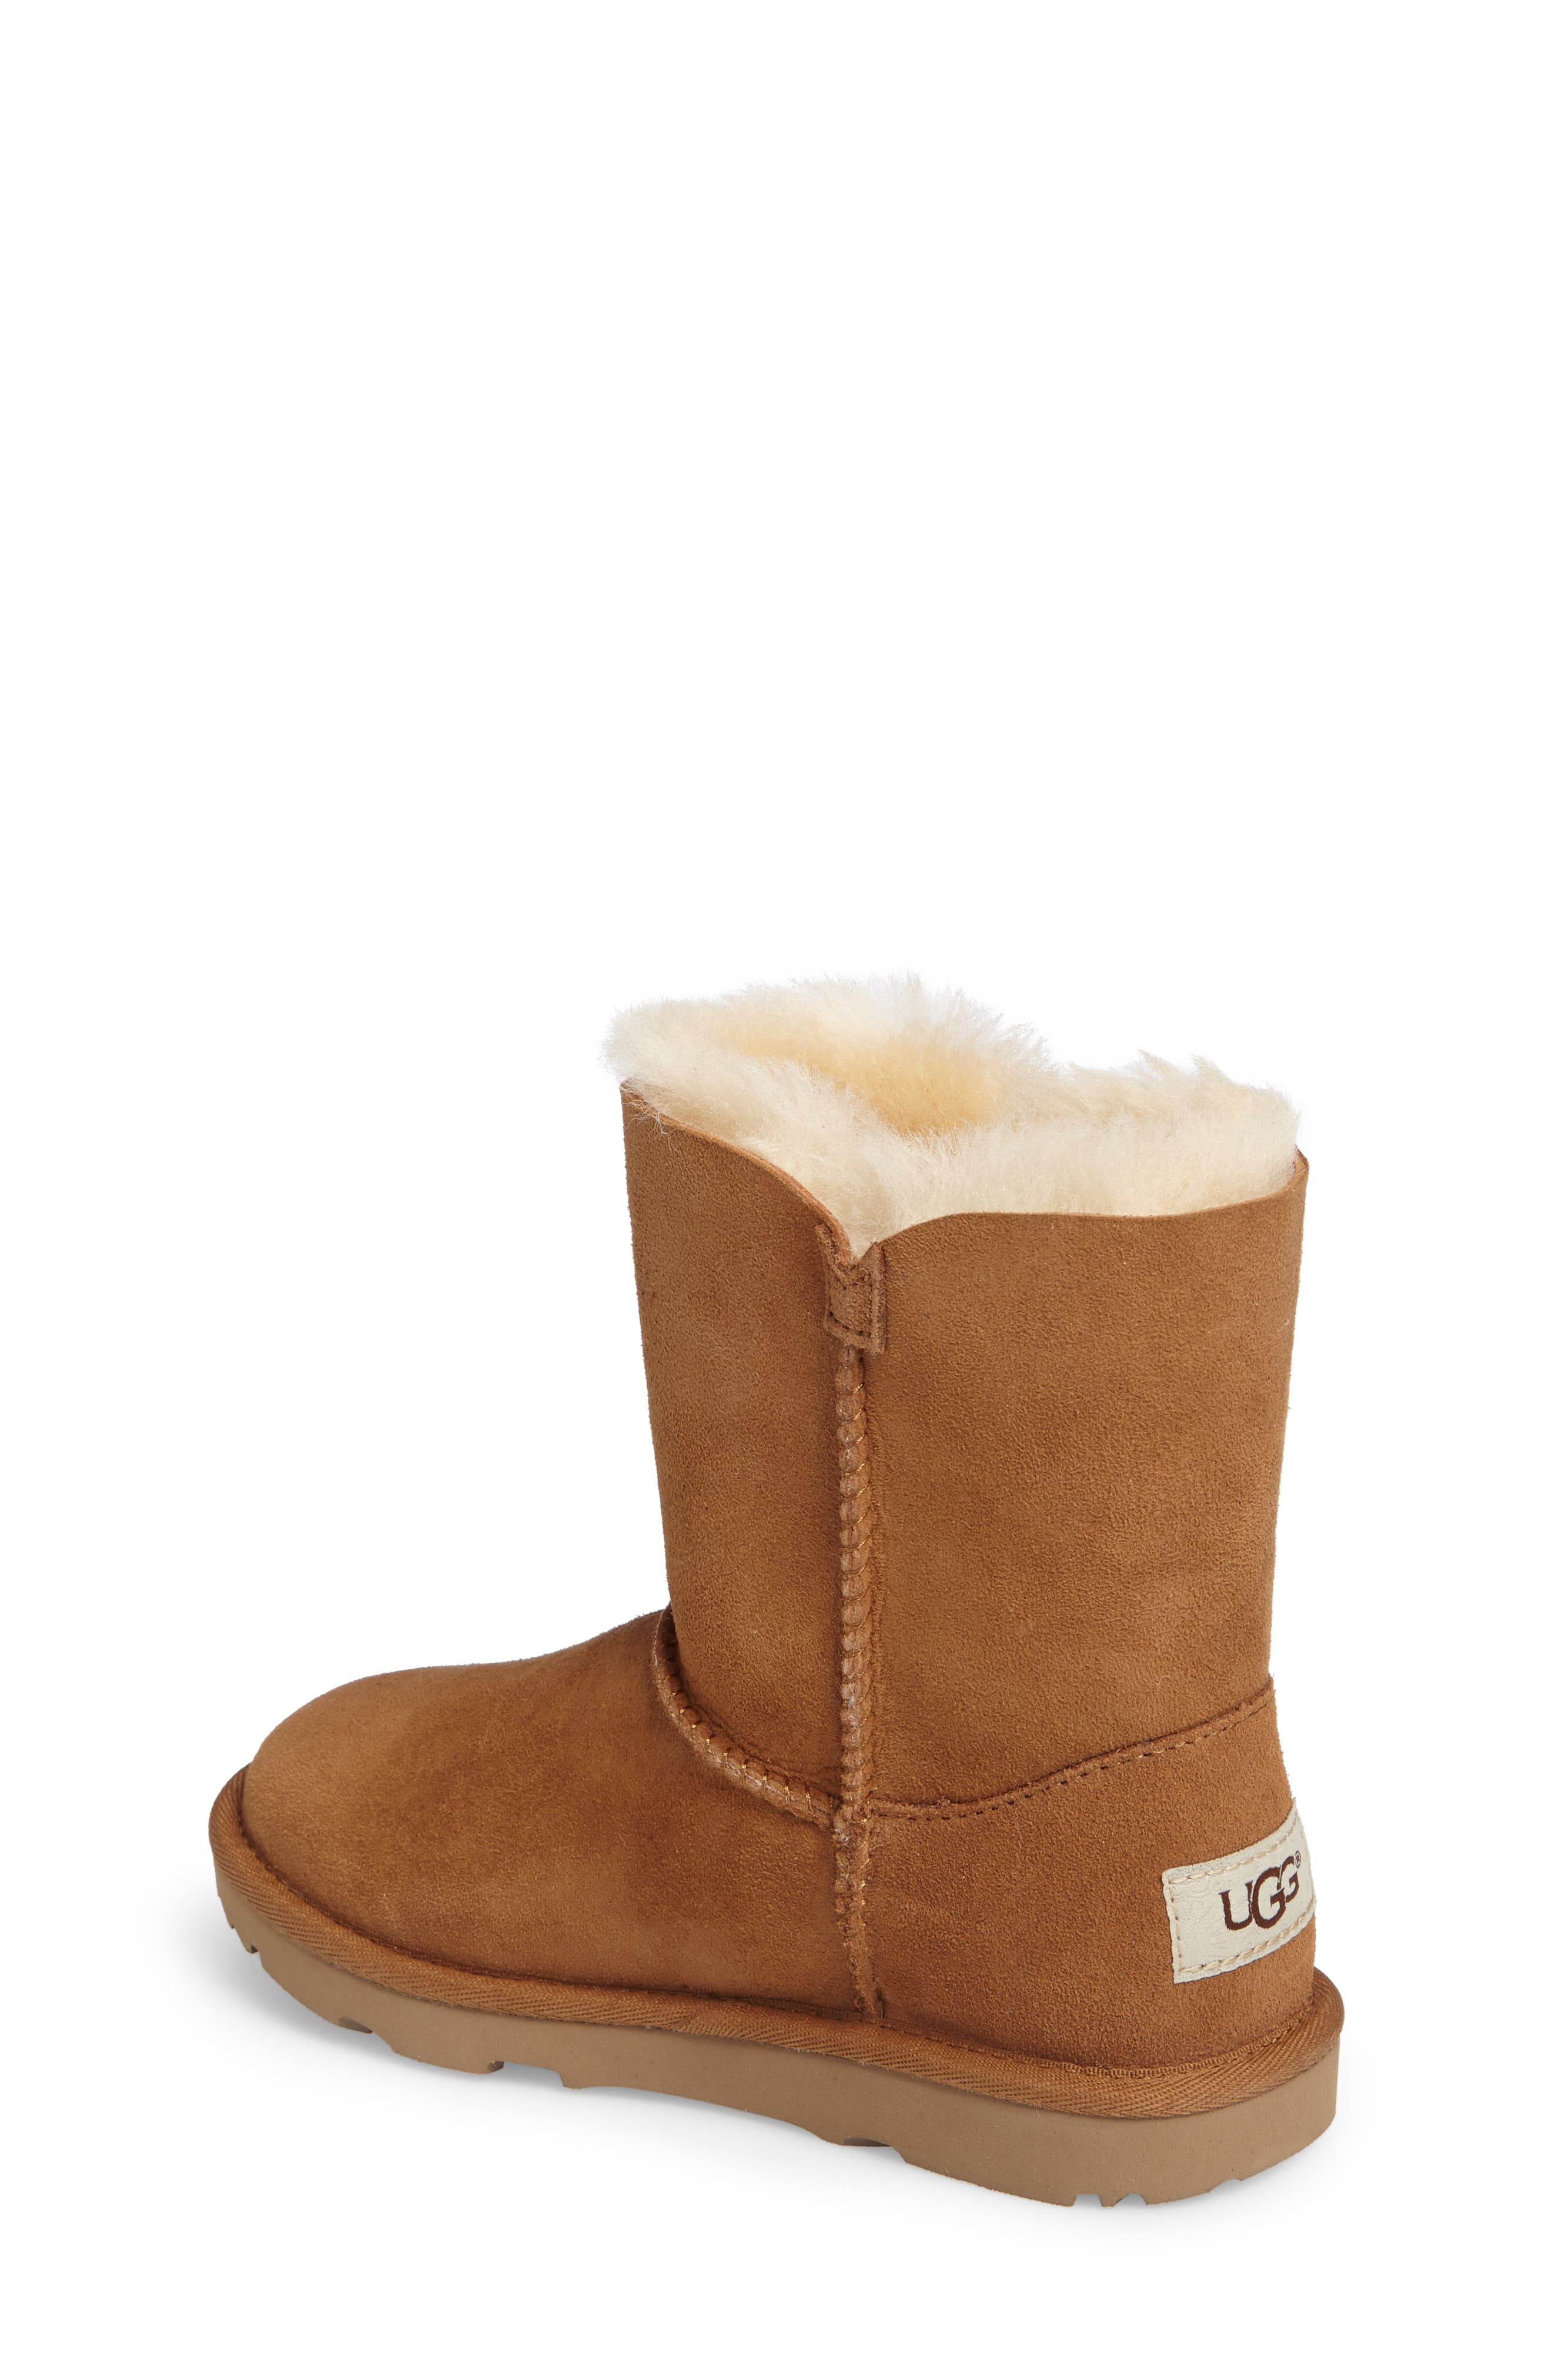 Alternate Image 2  - UGG® Bailey Button II Water Resistant Genuine Shearling Boot (Walker, Toddler, Little Kid & Big Kid)